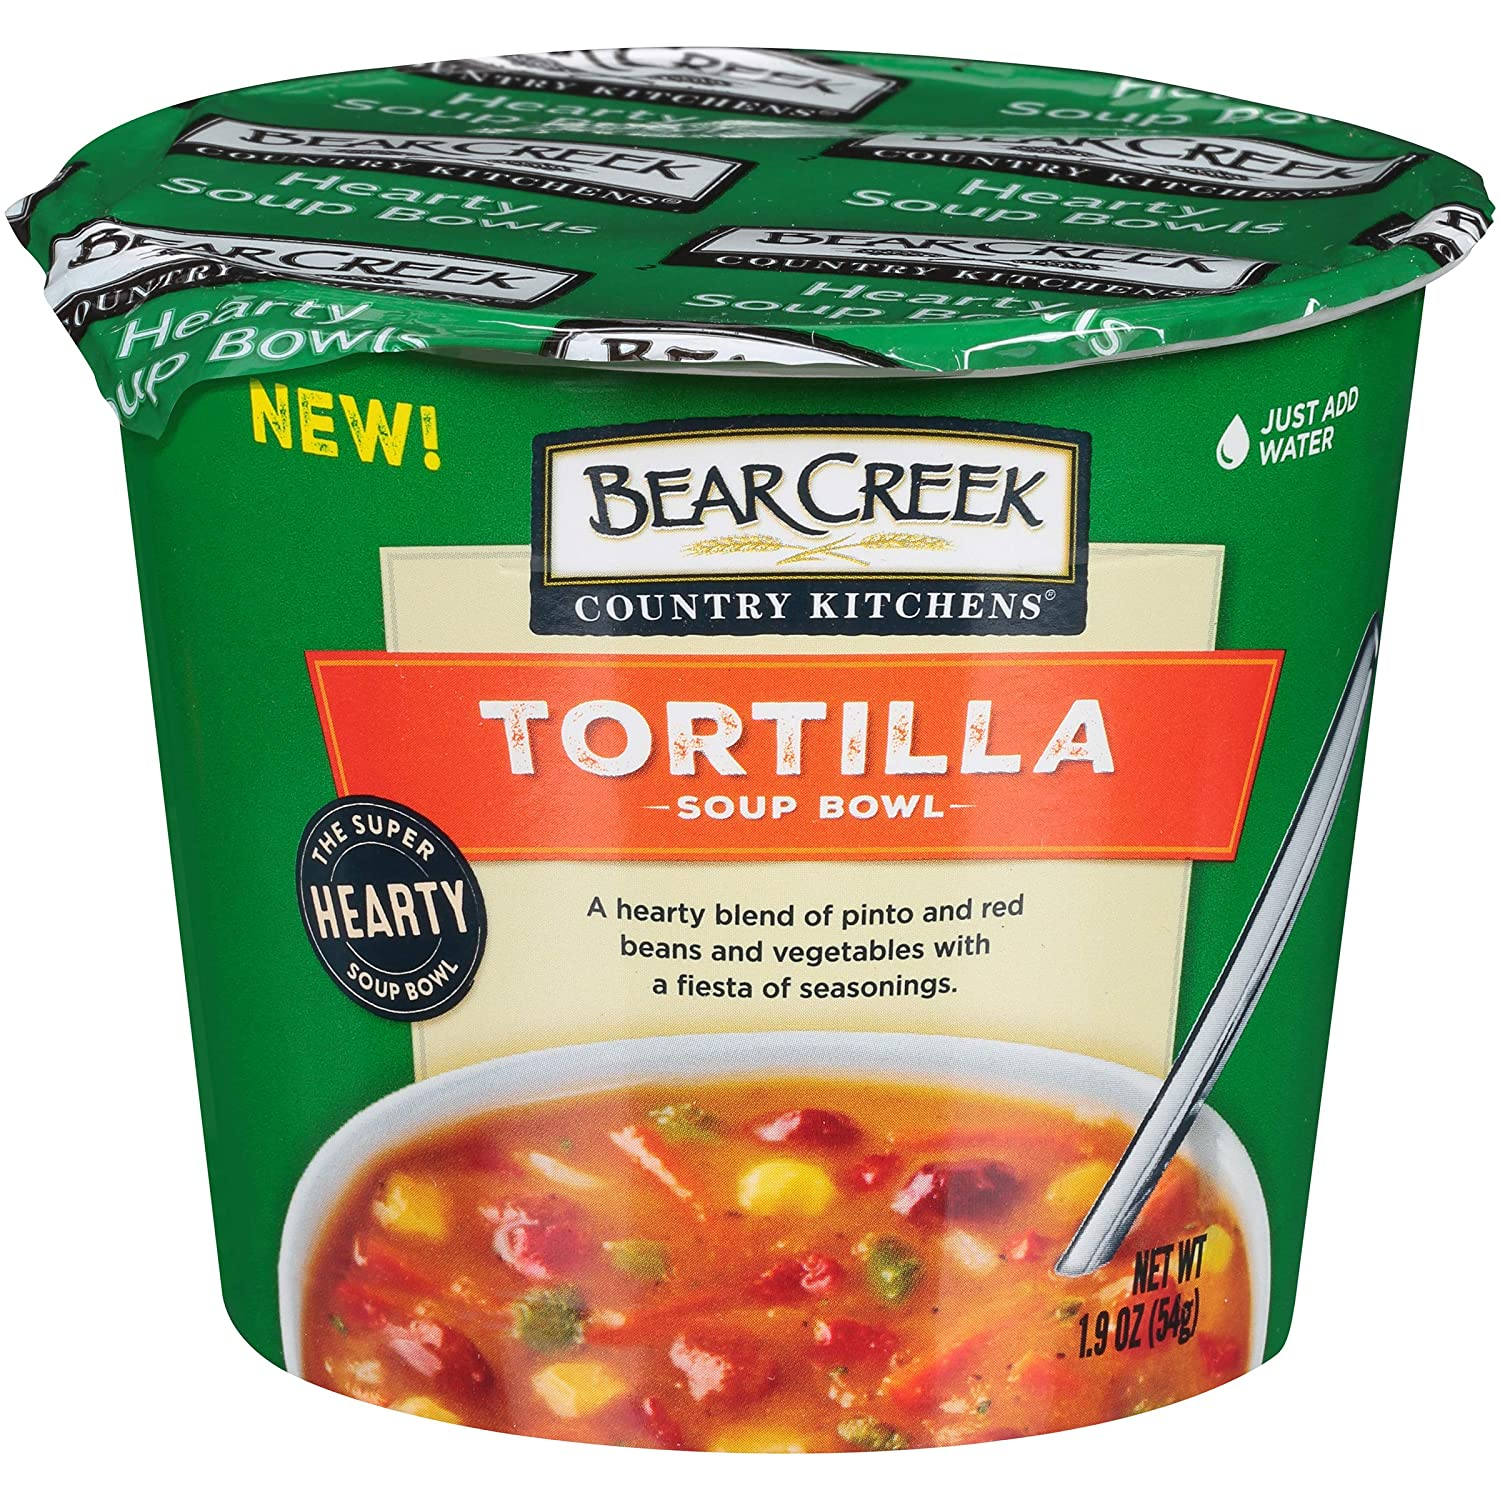 Bear Creek Hearty Soup Bowl Max 44% OFF Tortilla Outlet sale feature of 1.9 6 Pack Ounce